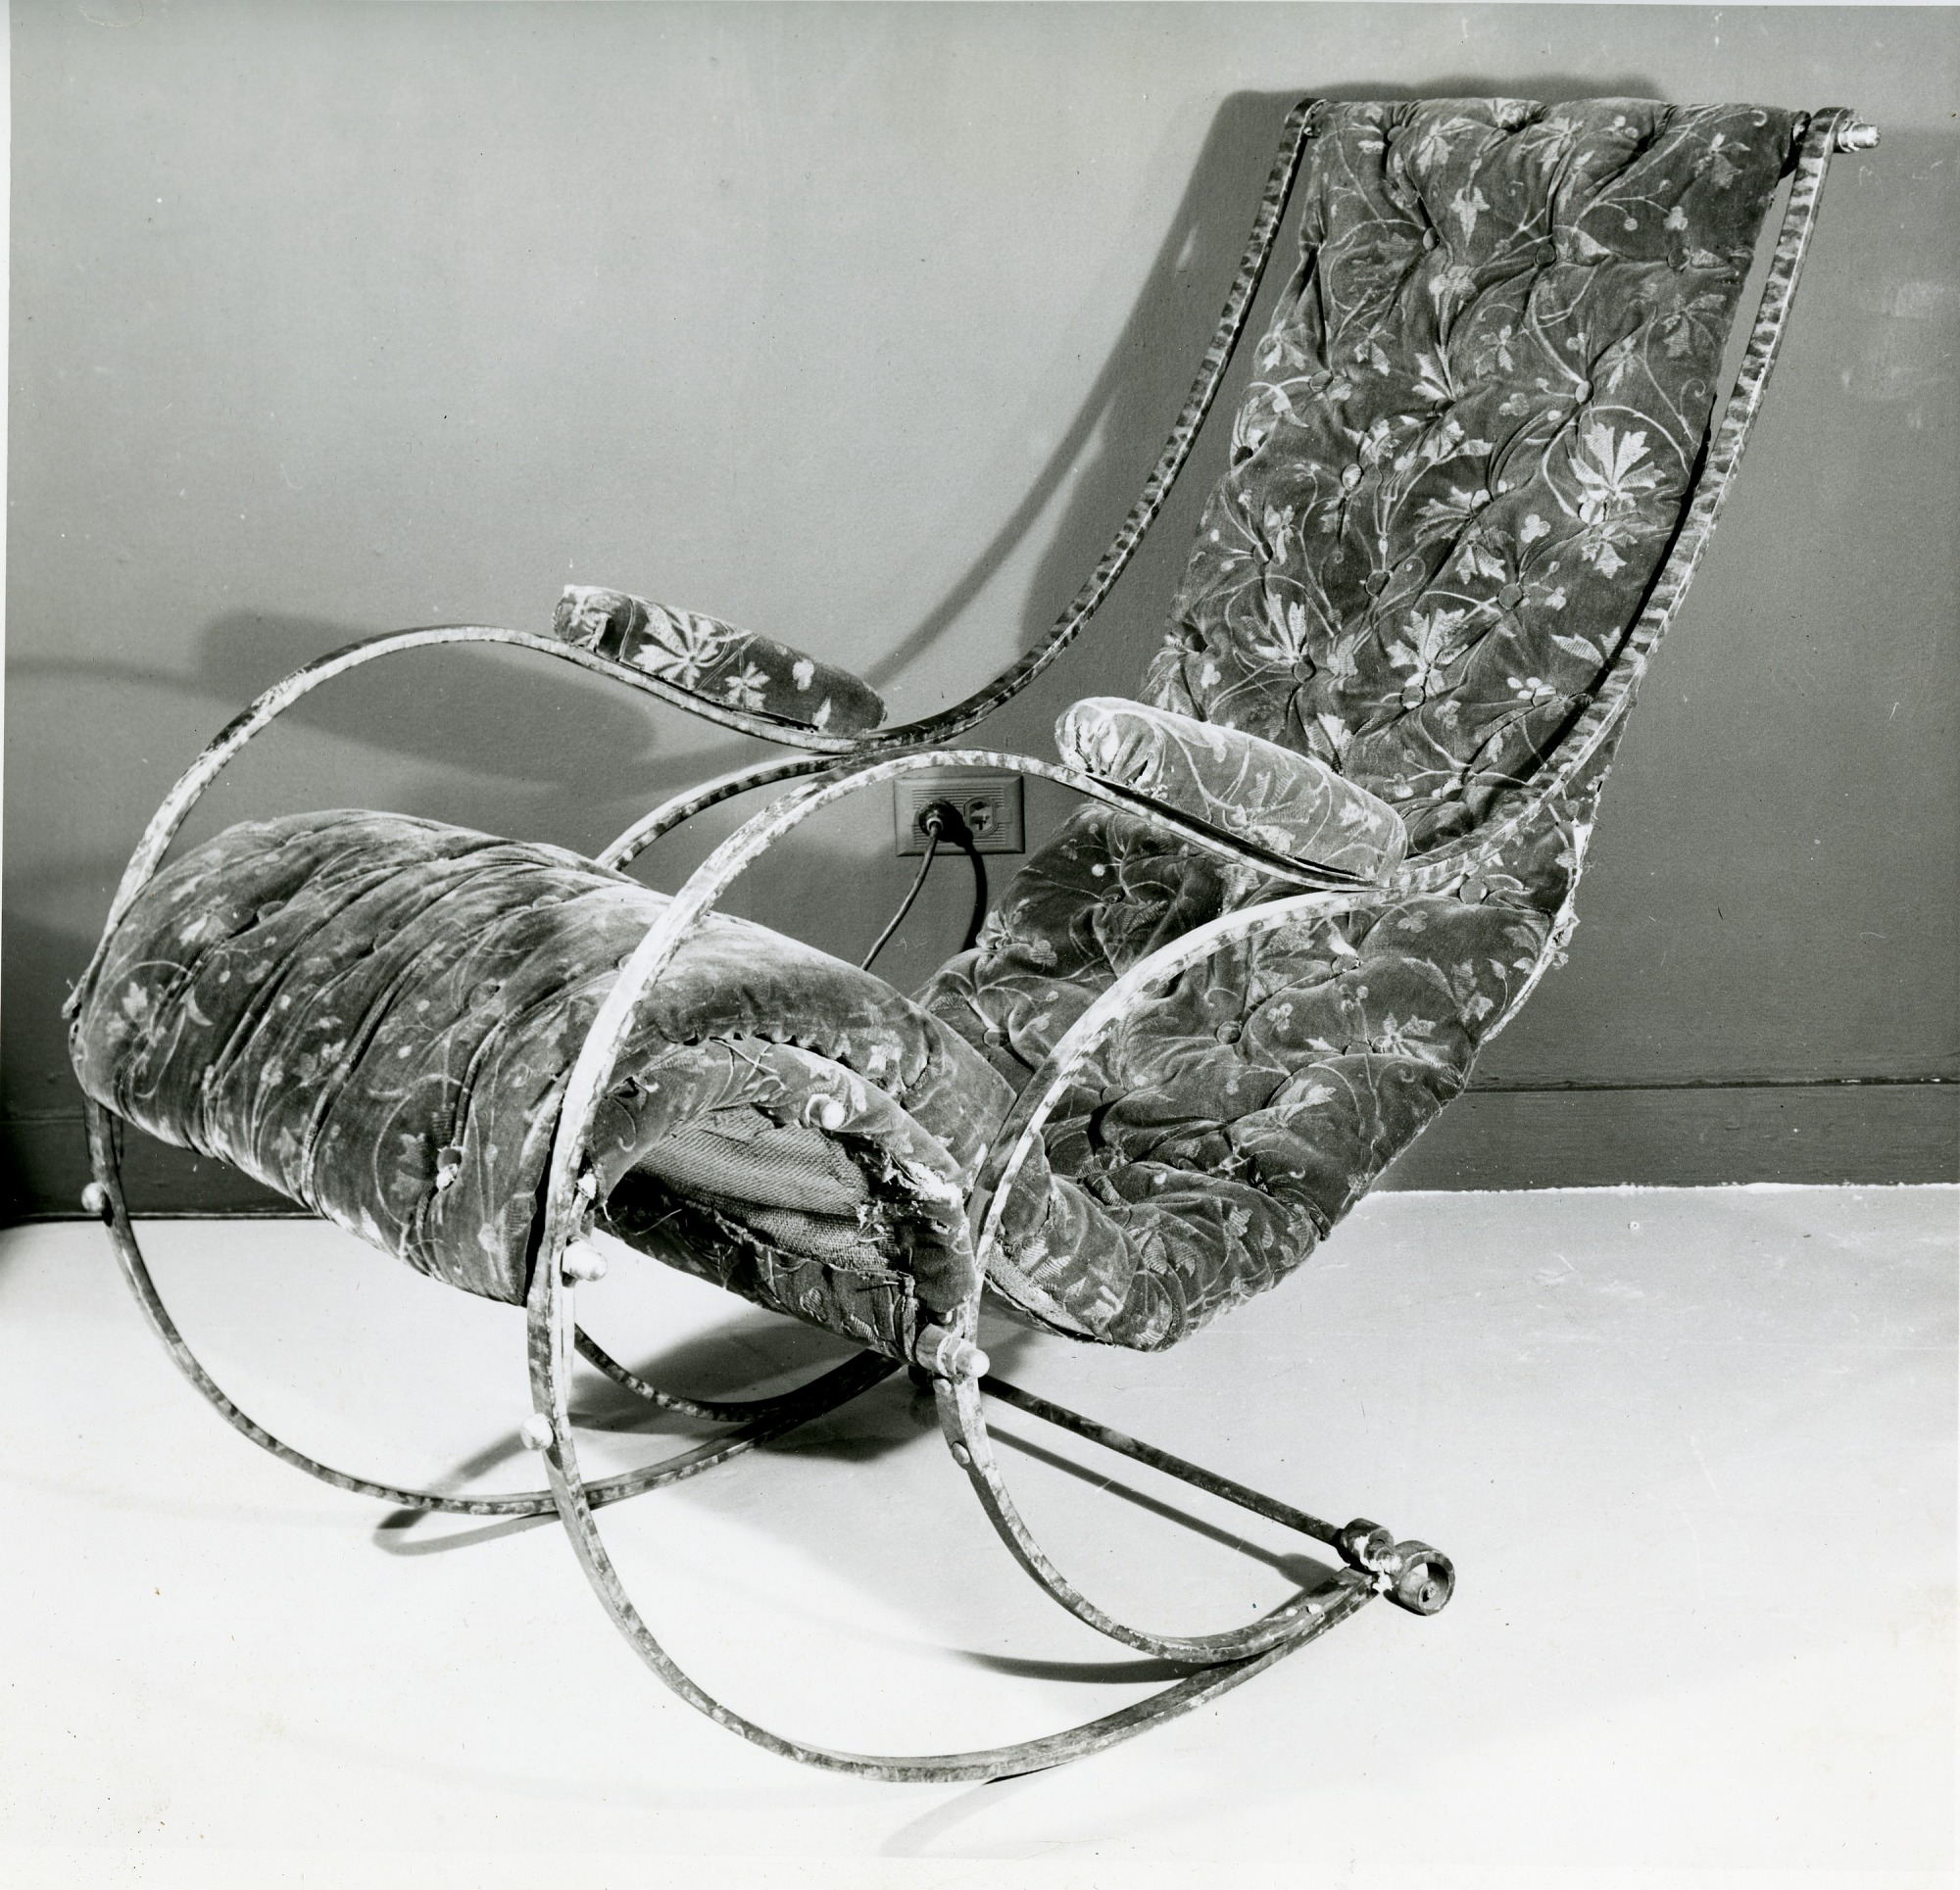 Steel Chair Designed by Peter Cooper